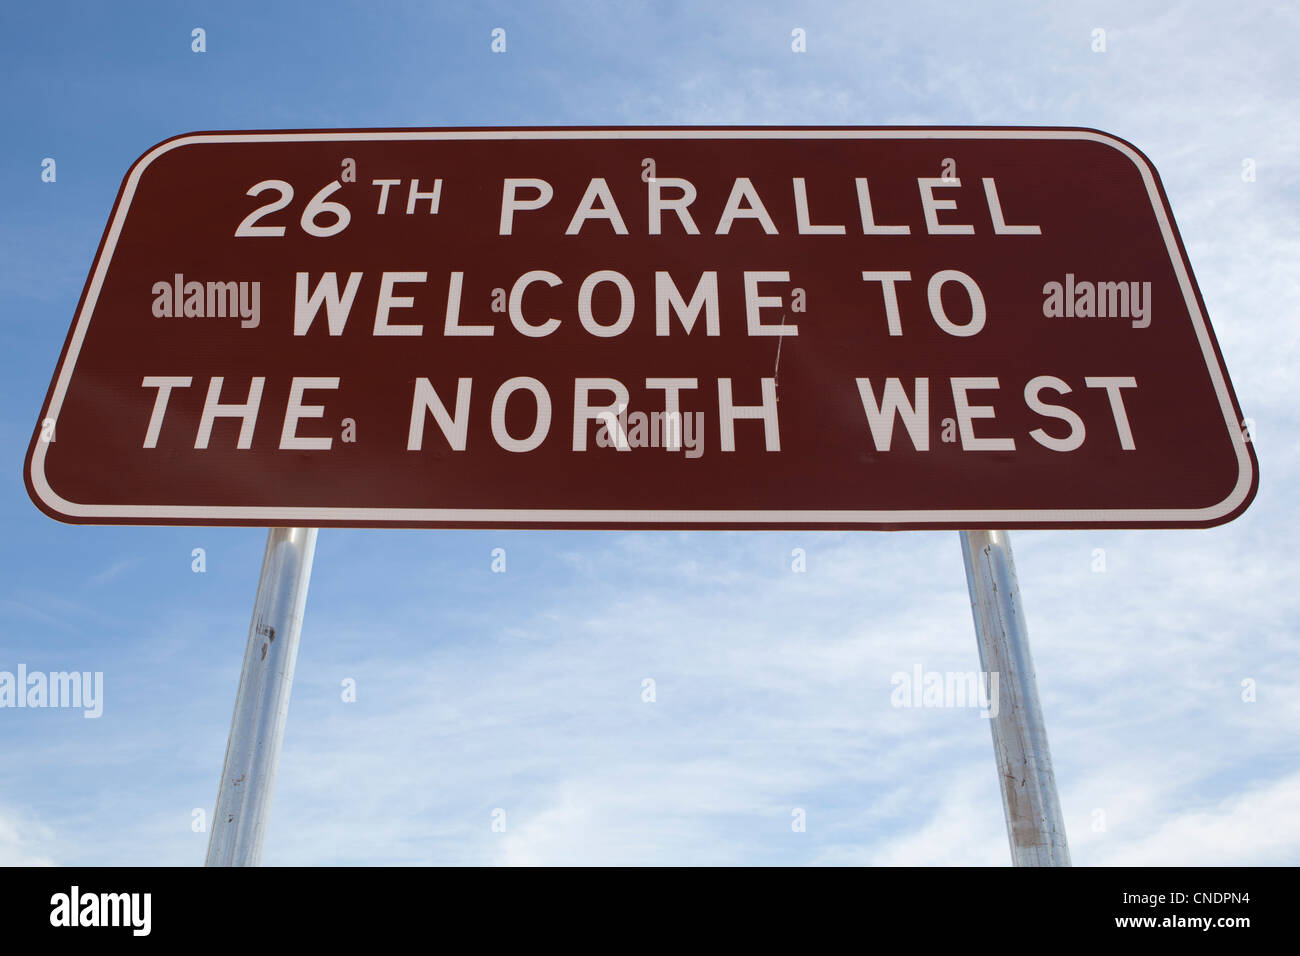 Signpost telling people they are passing the 26th Parallel in Western Australia. - Stock Image